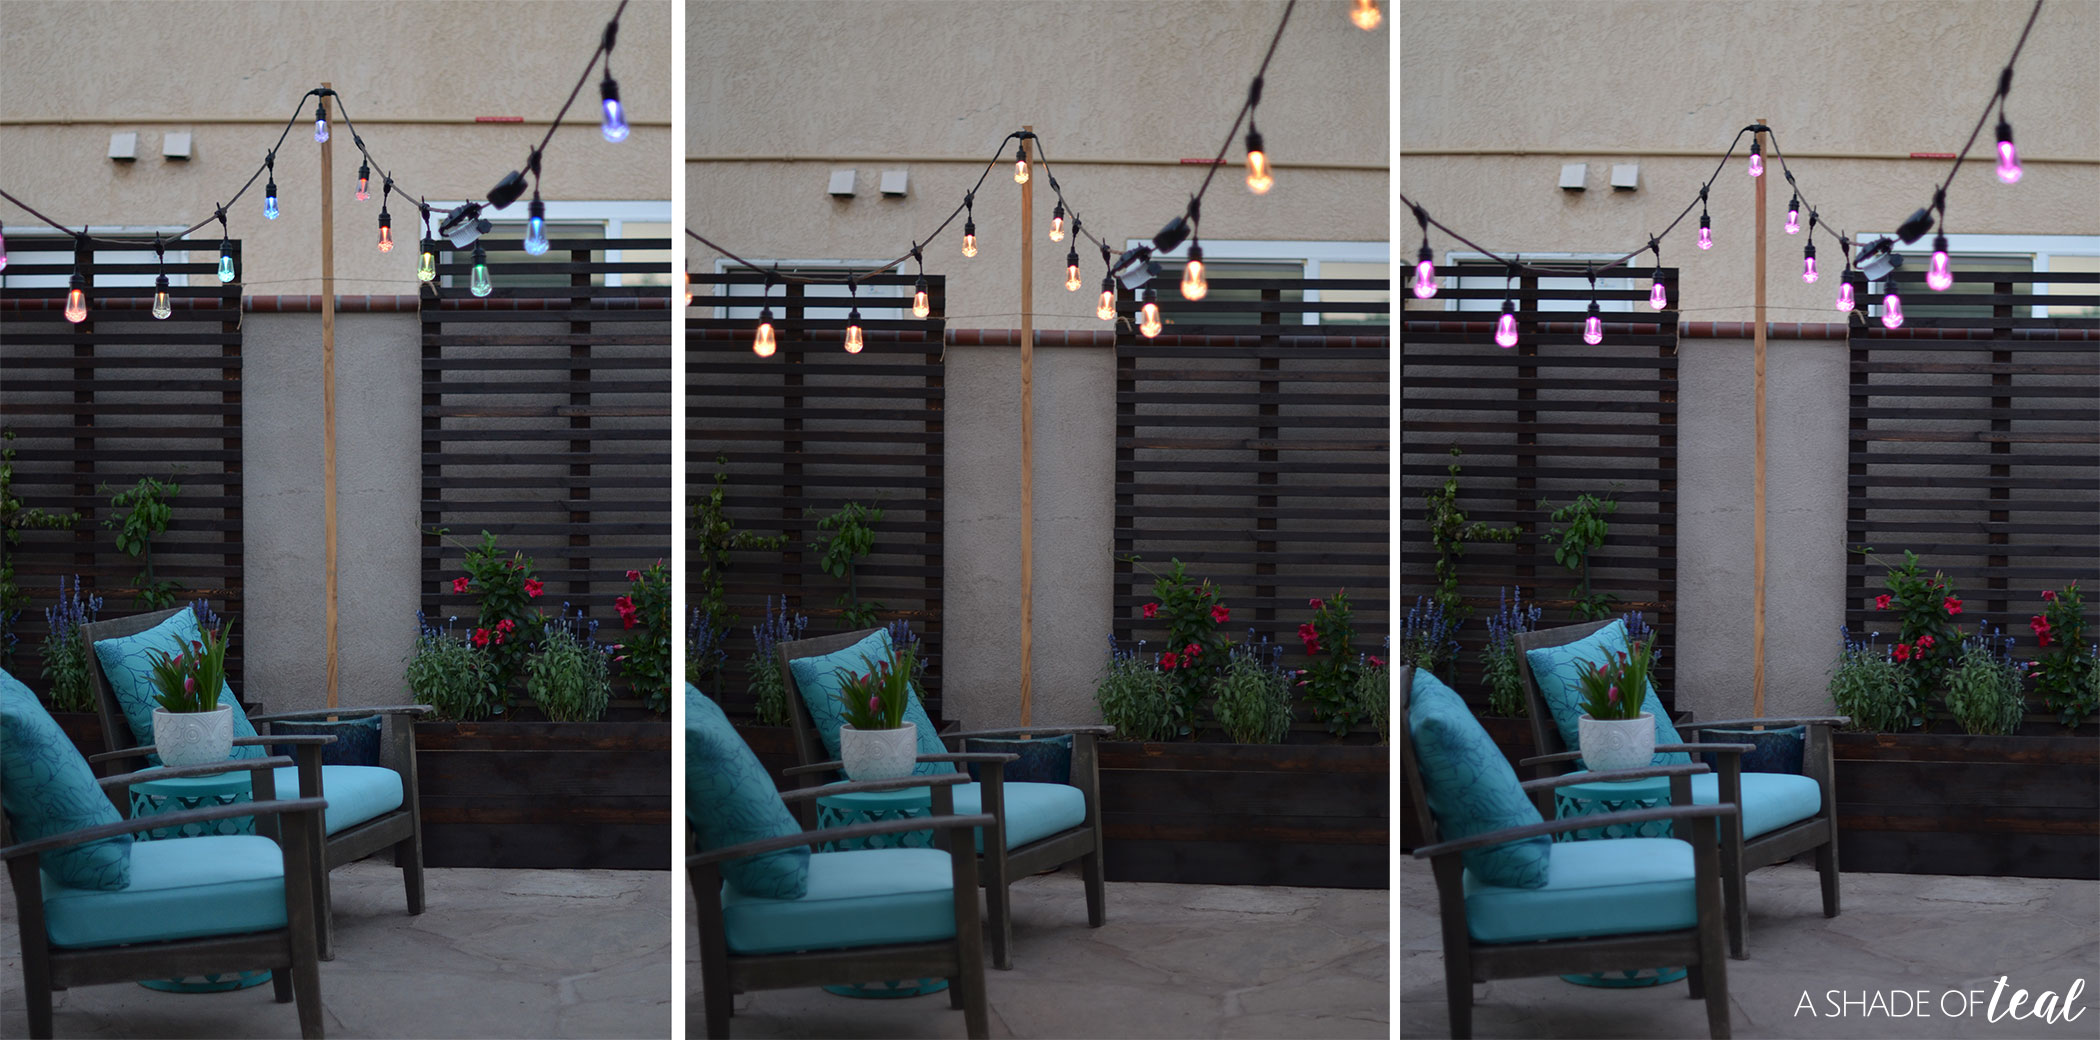 I Know My Daughters Favorite Part Is All The Color Options. With The  Enbrighten Seasons Color Changing Café Lights The Options Are Endless  Including My ...